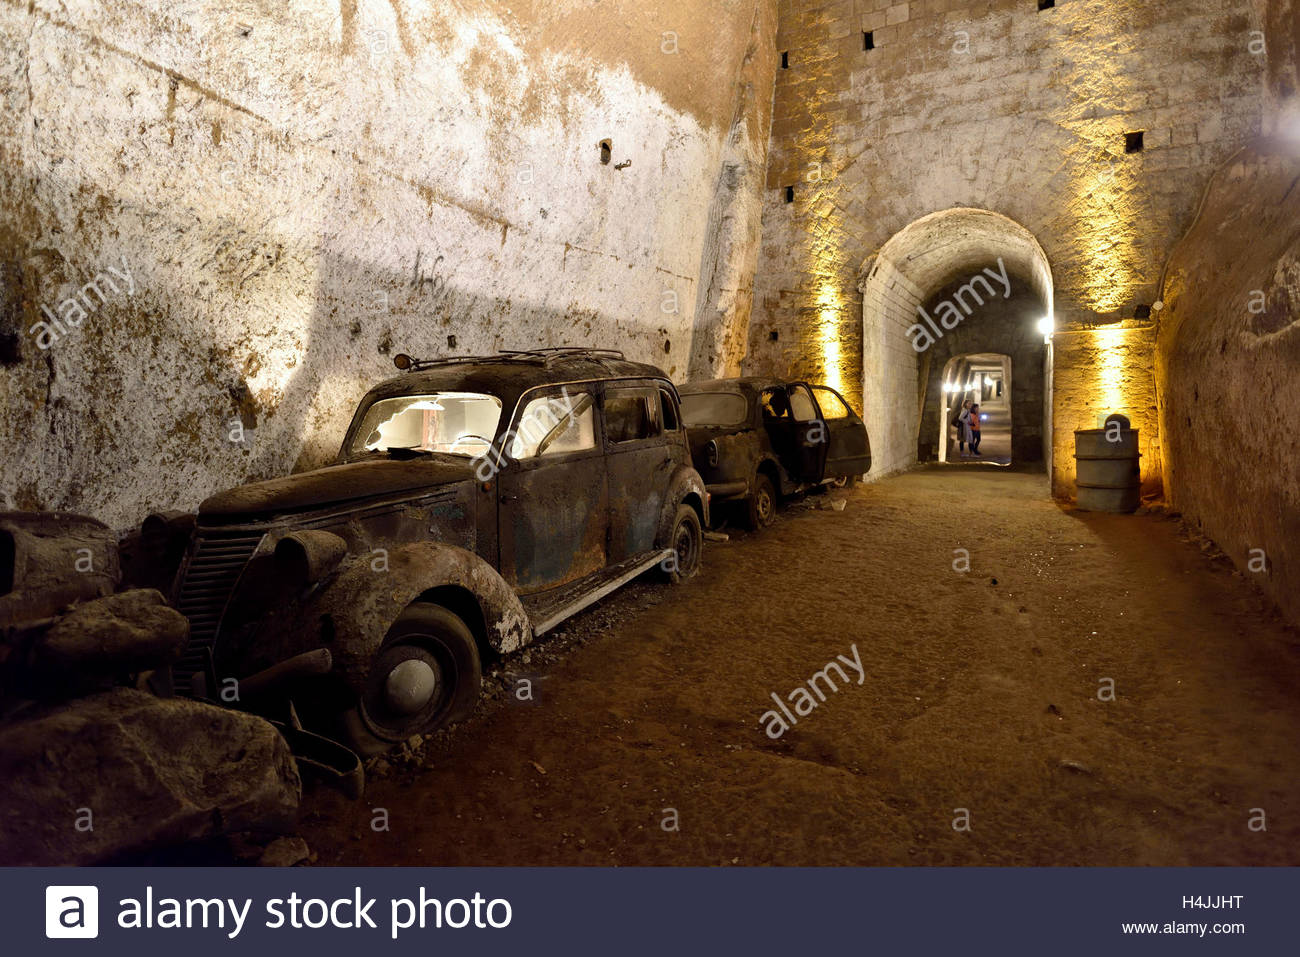 Galleria Borbonica Naples, Old vintage cars in the Galleria Borbonica, Bourbon Tunnel, Naples ...